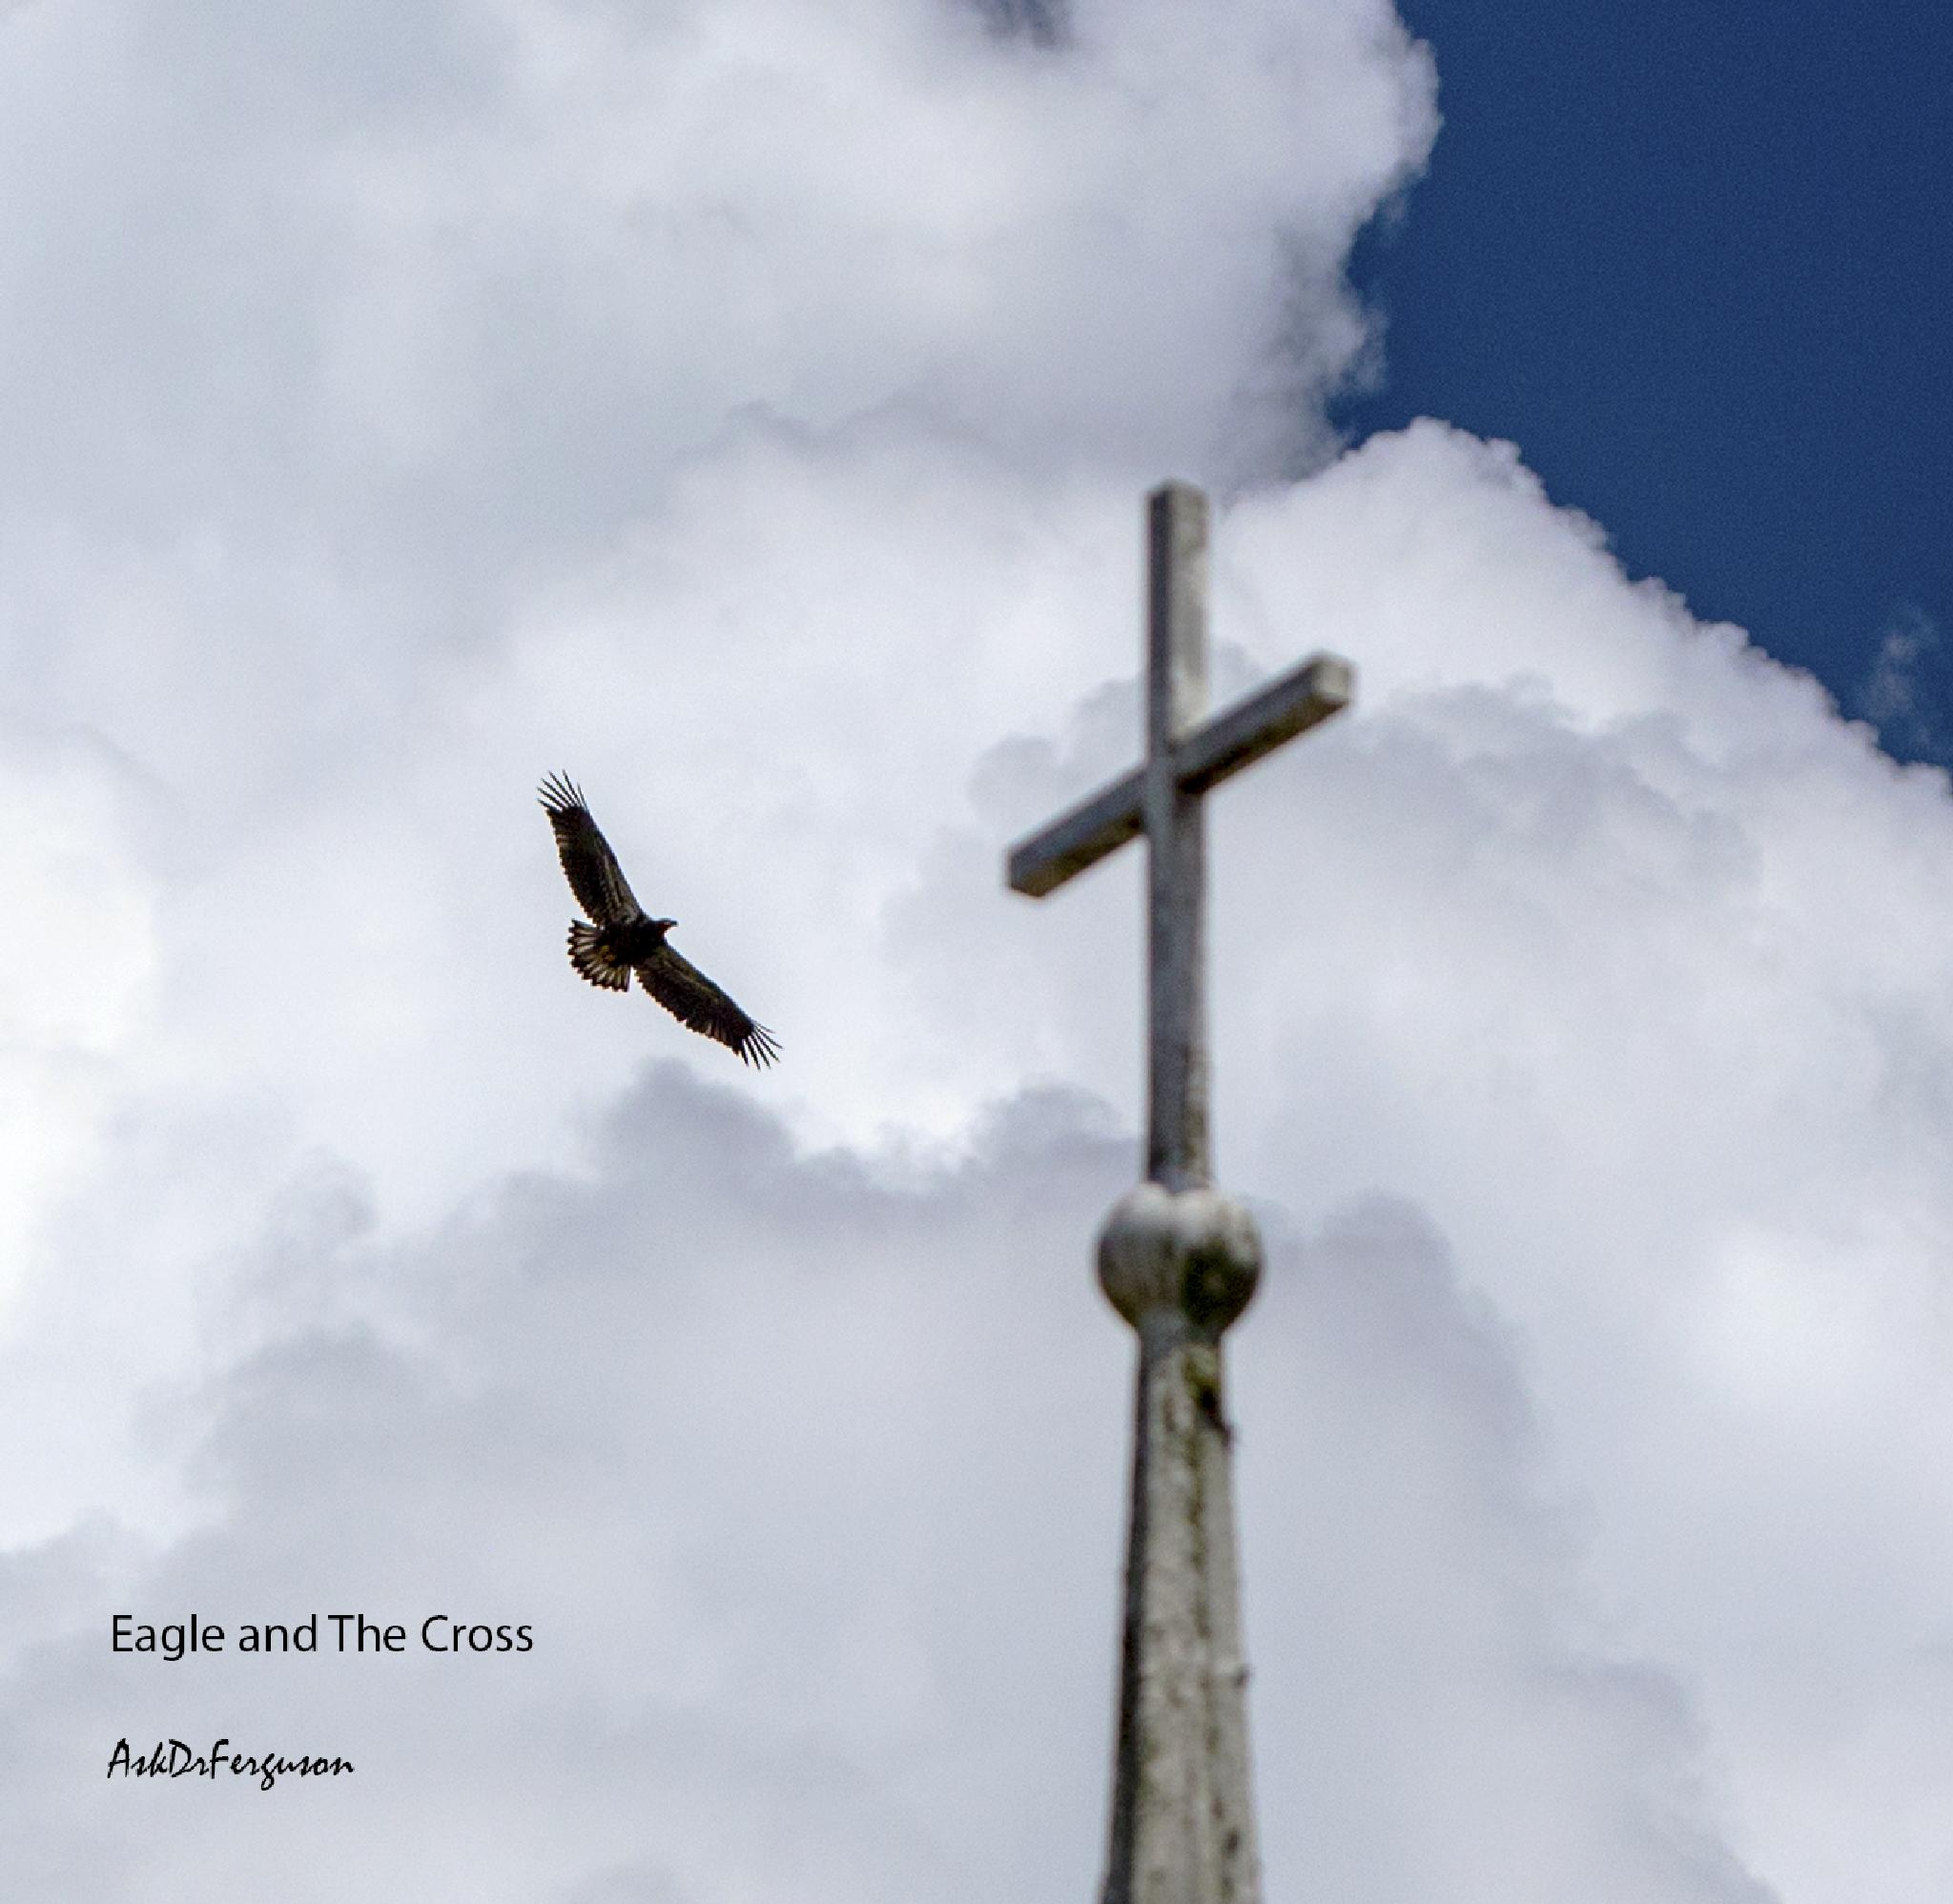 Eagle and The Cross by askdrferguson